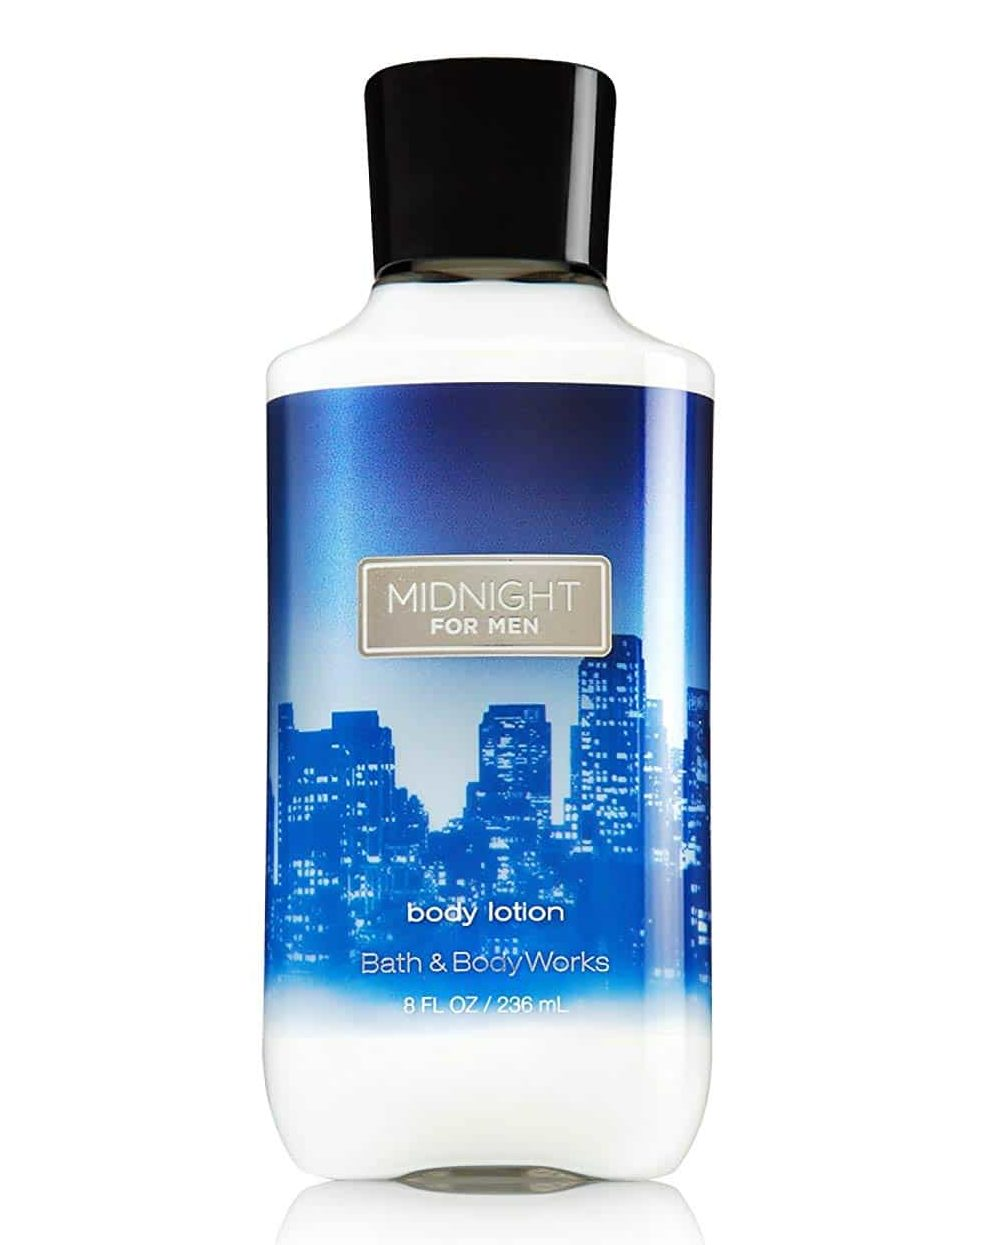 Bath and Body Works Midnight For Men